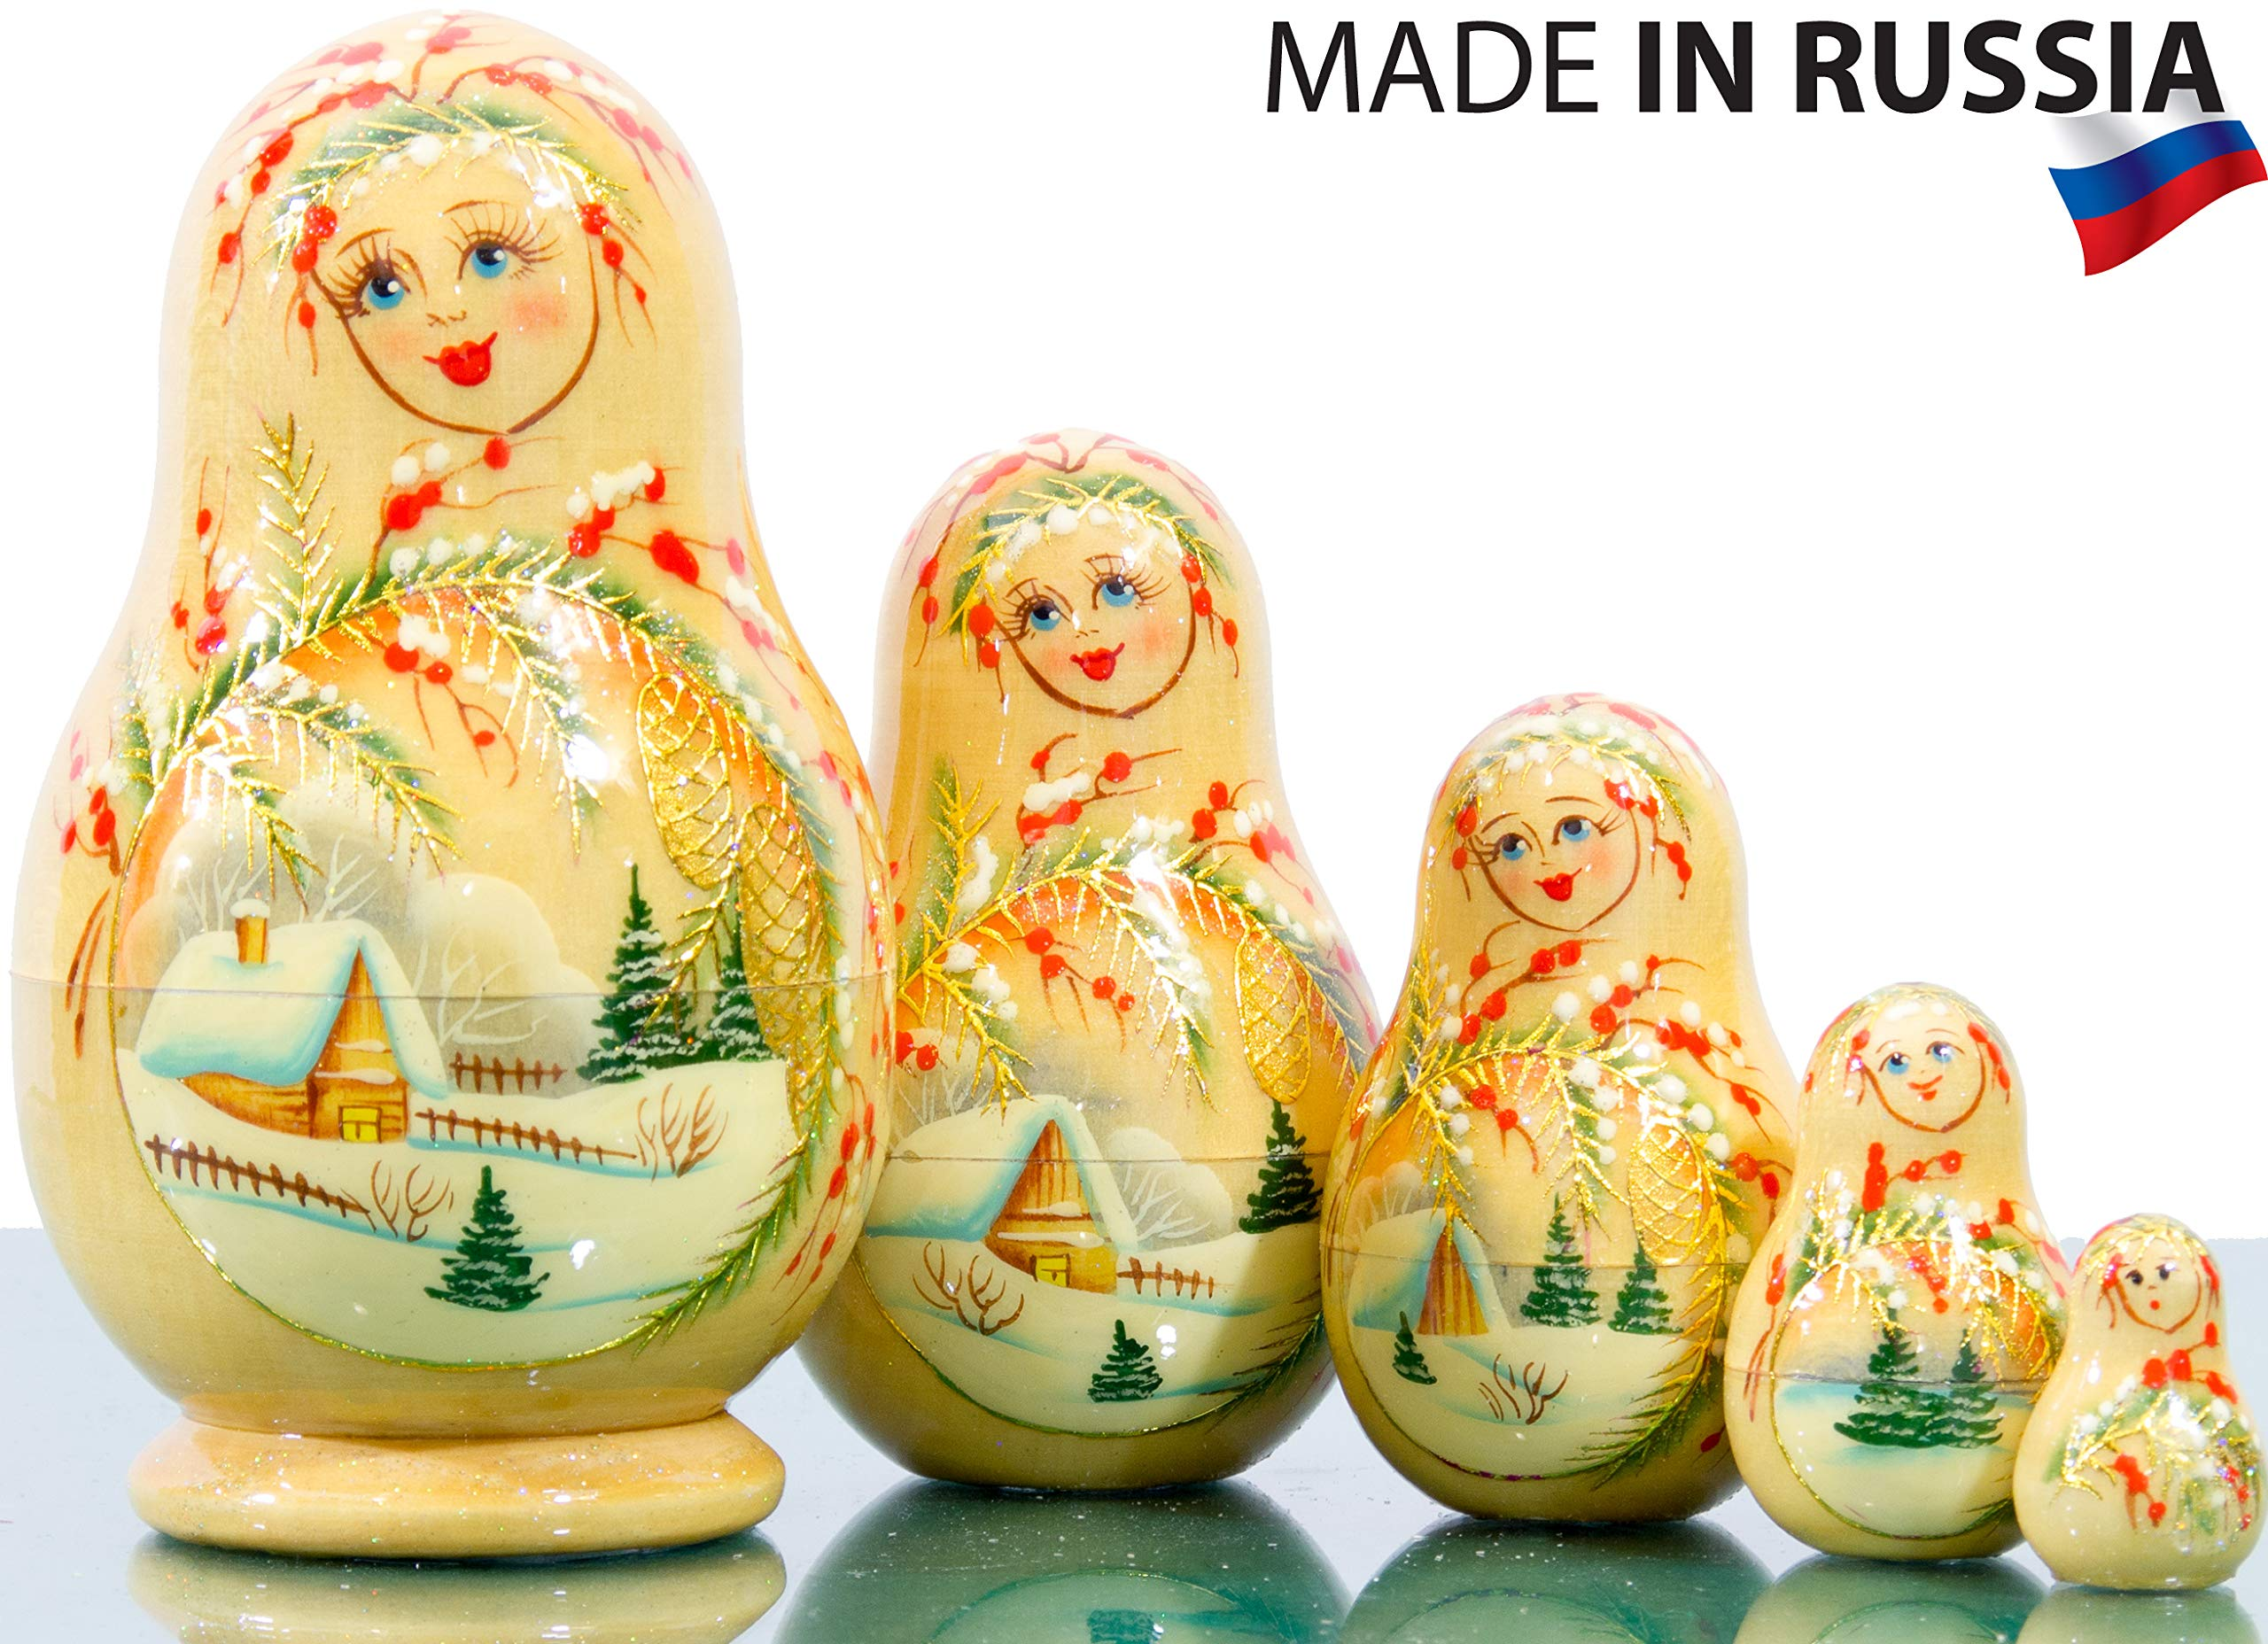 Russian Nesting Doll - Kirov - VJATKA - Hand Painted in Russia - Medium Size - Wooden Decoration Gift Doll - Matryoshka Babushka (Design B, 4.75`` (5 Dolls in 1)) by craftsfromrussia